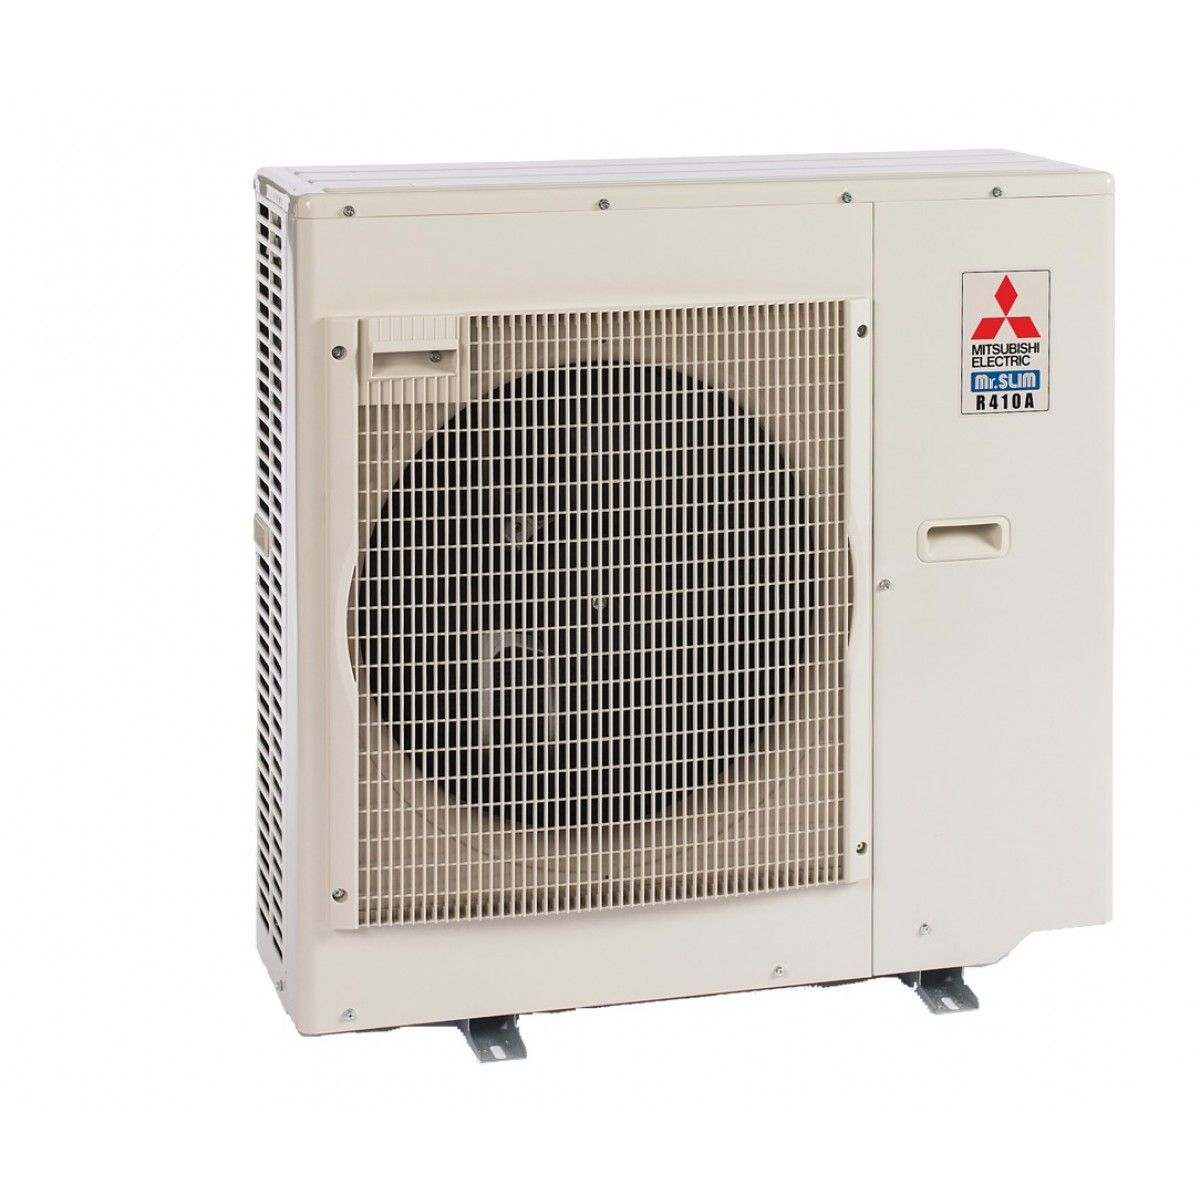 36k btu mitsubishi puza outdoor unit in ductless ac for Ductless ac